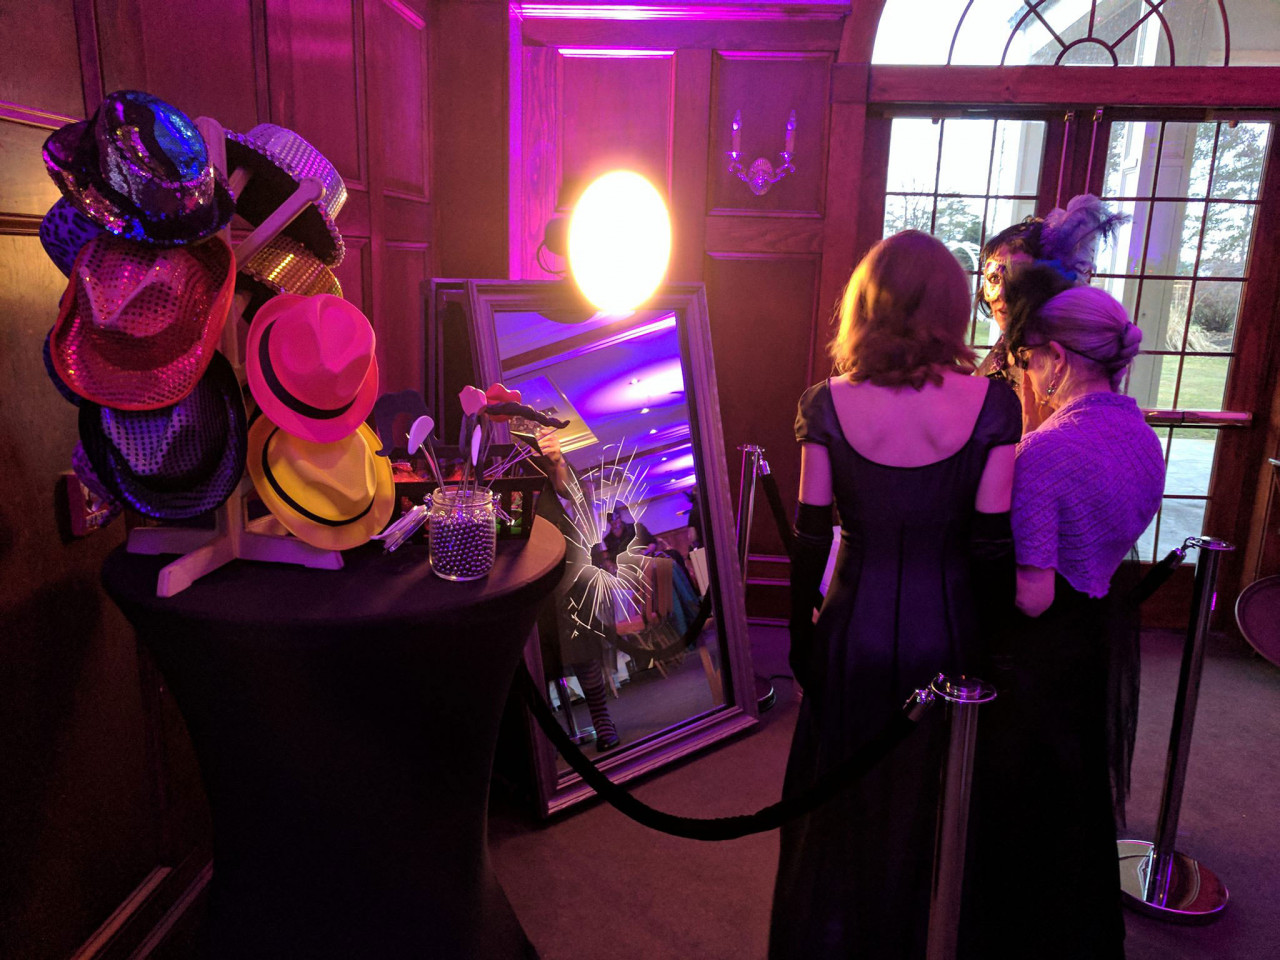 Mirror Me Booth, a new magical photo booth: Setup at a Masquerade Ball